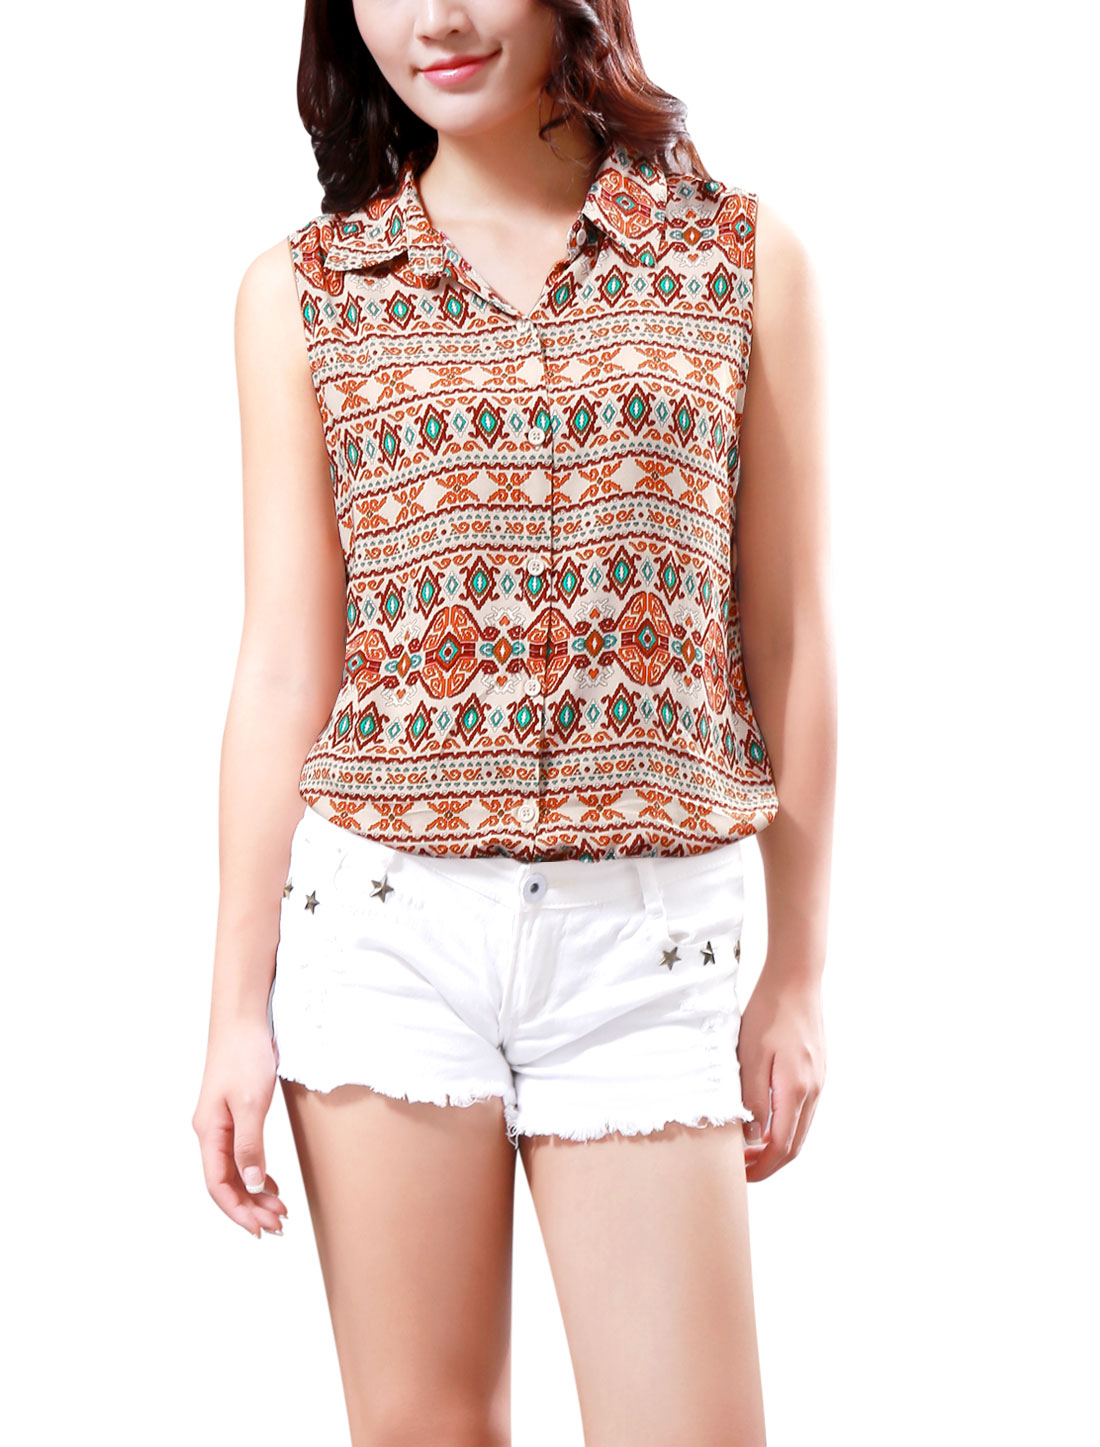 Ladies All-Over Geometric Print Sleeveless Fashion Shirt Beige M